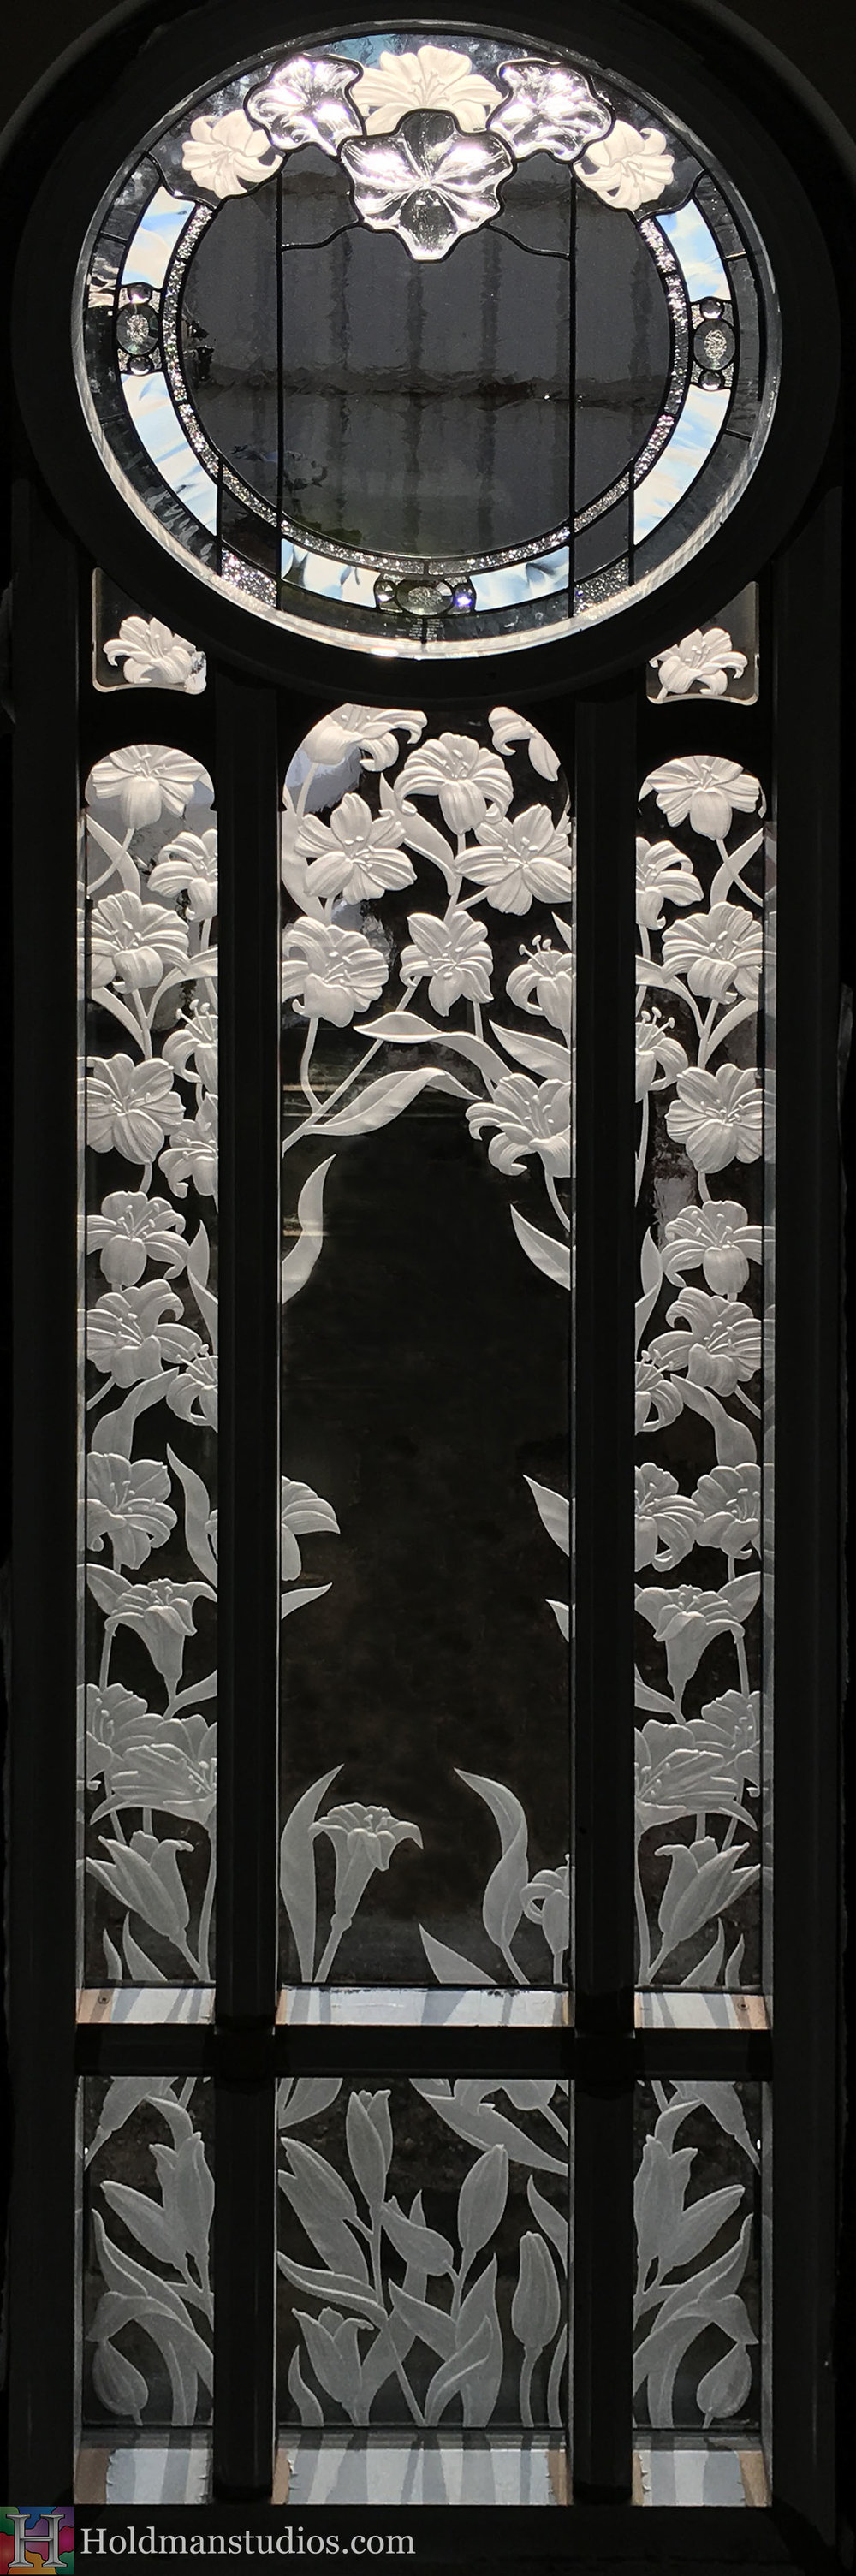 Holdman-Studios-Stained-Etched-Cast-Glass-Paris-LDS-Temple-Martagon-Madonna-Lily-Flowers-Leaves-Window.jpg